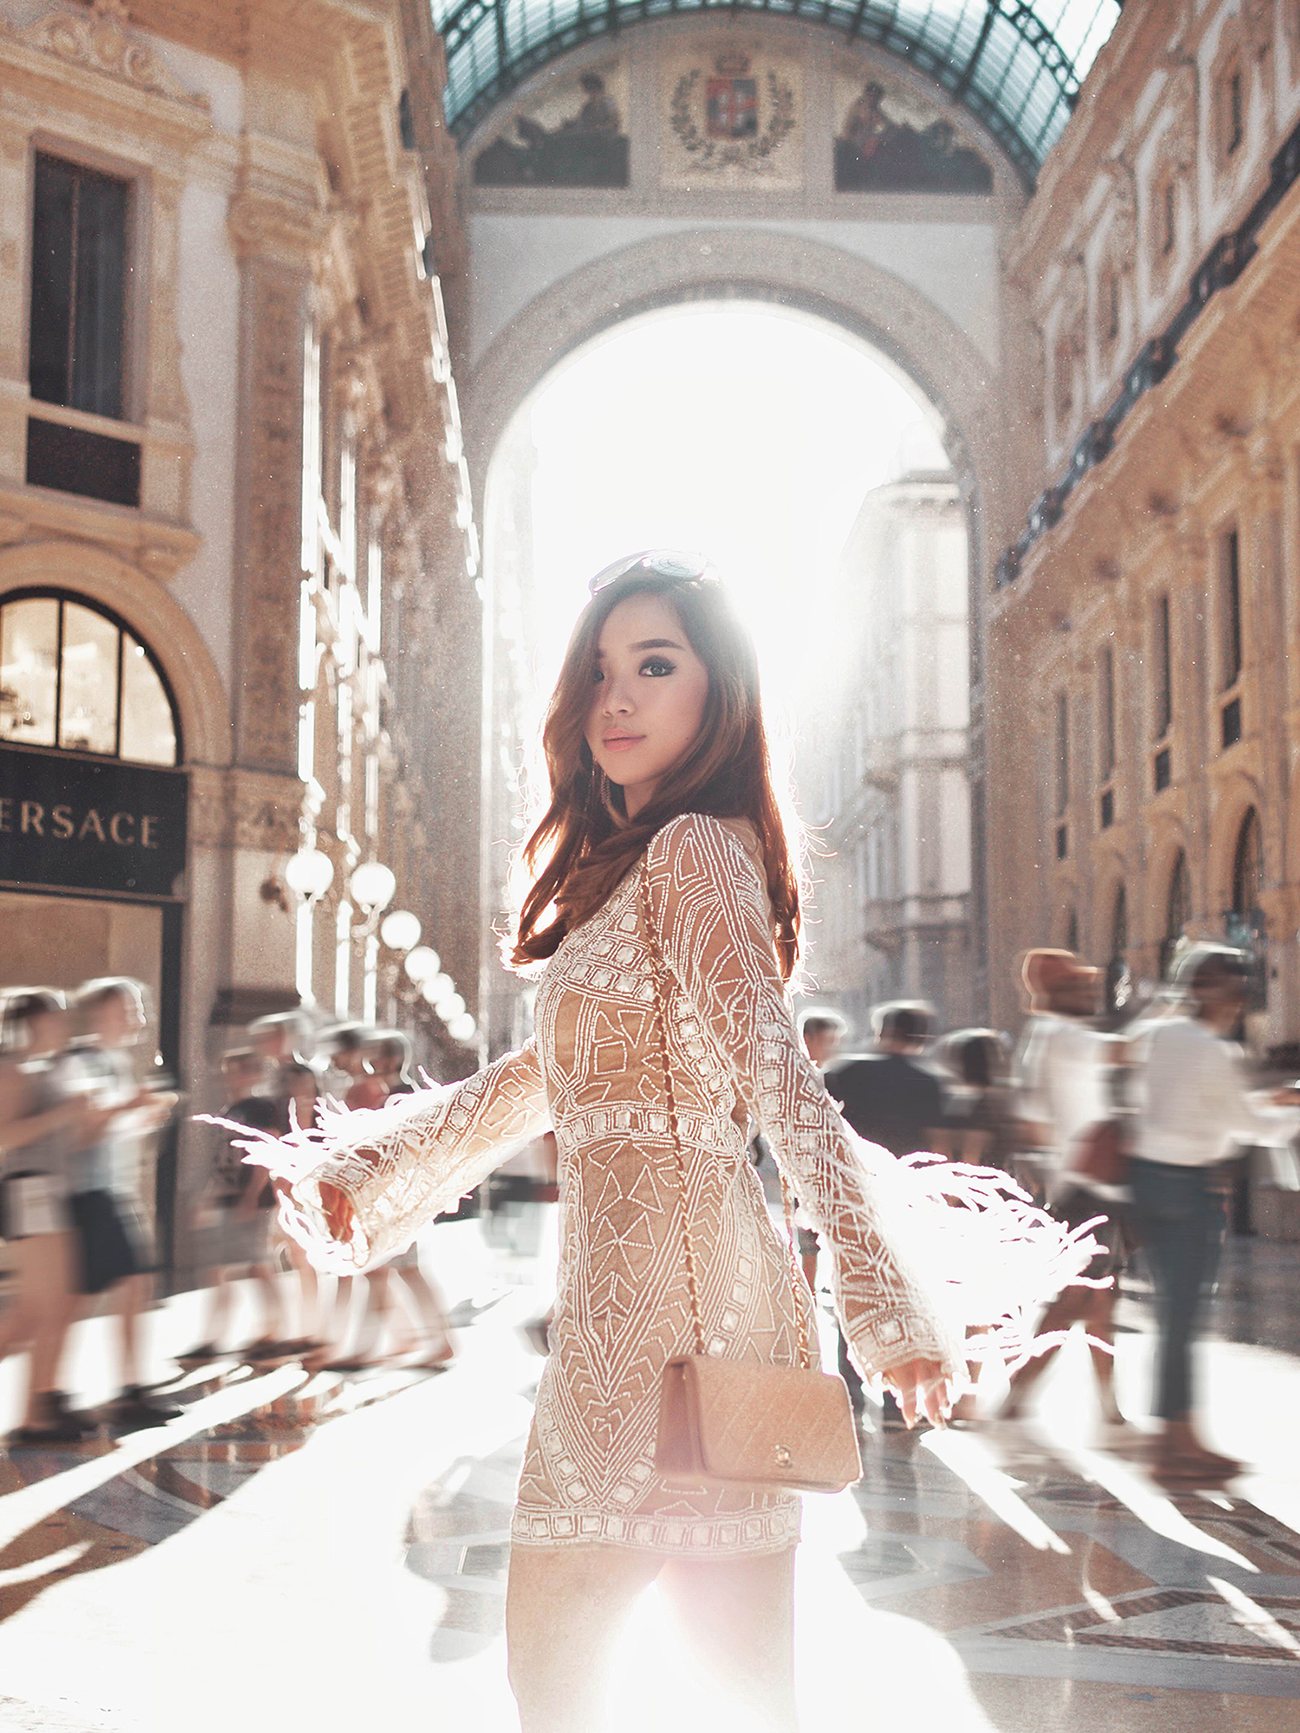 willabelle-ong-paledivision-street-style-fashion-travel-lifestyle-blog-australia-singapore-blogger-italy-milan-missguided-premium-feather-sleeve-beaded-bodycon-dress-galleria-vittorioemanuele-ii